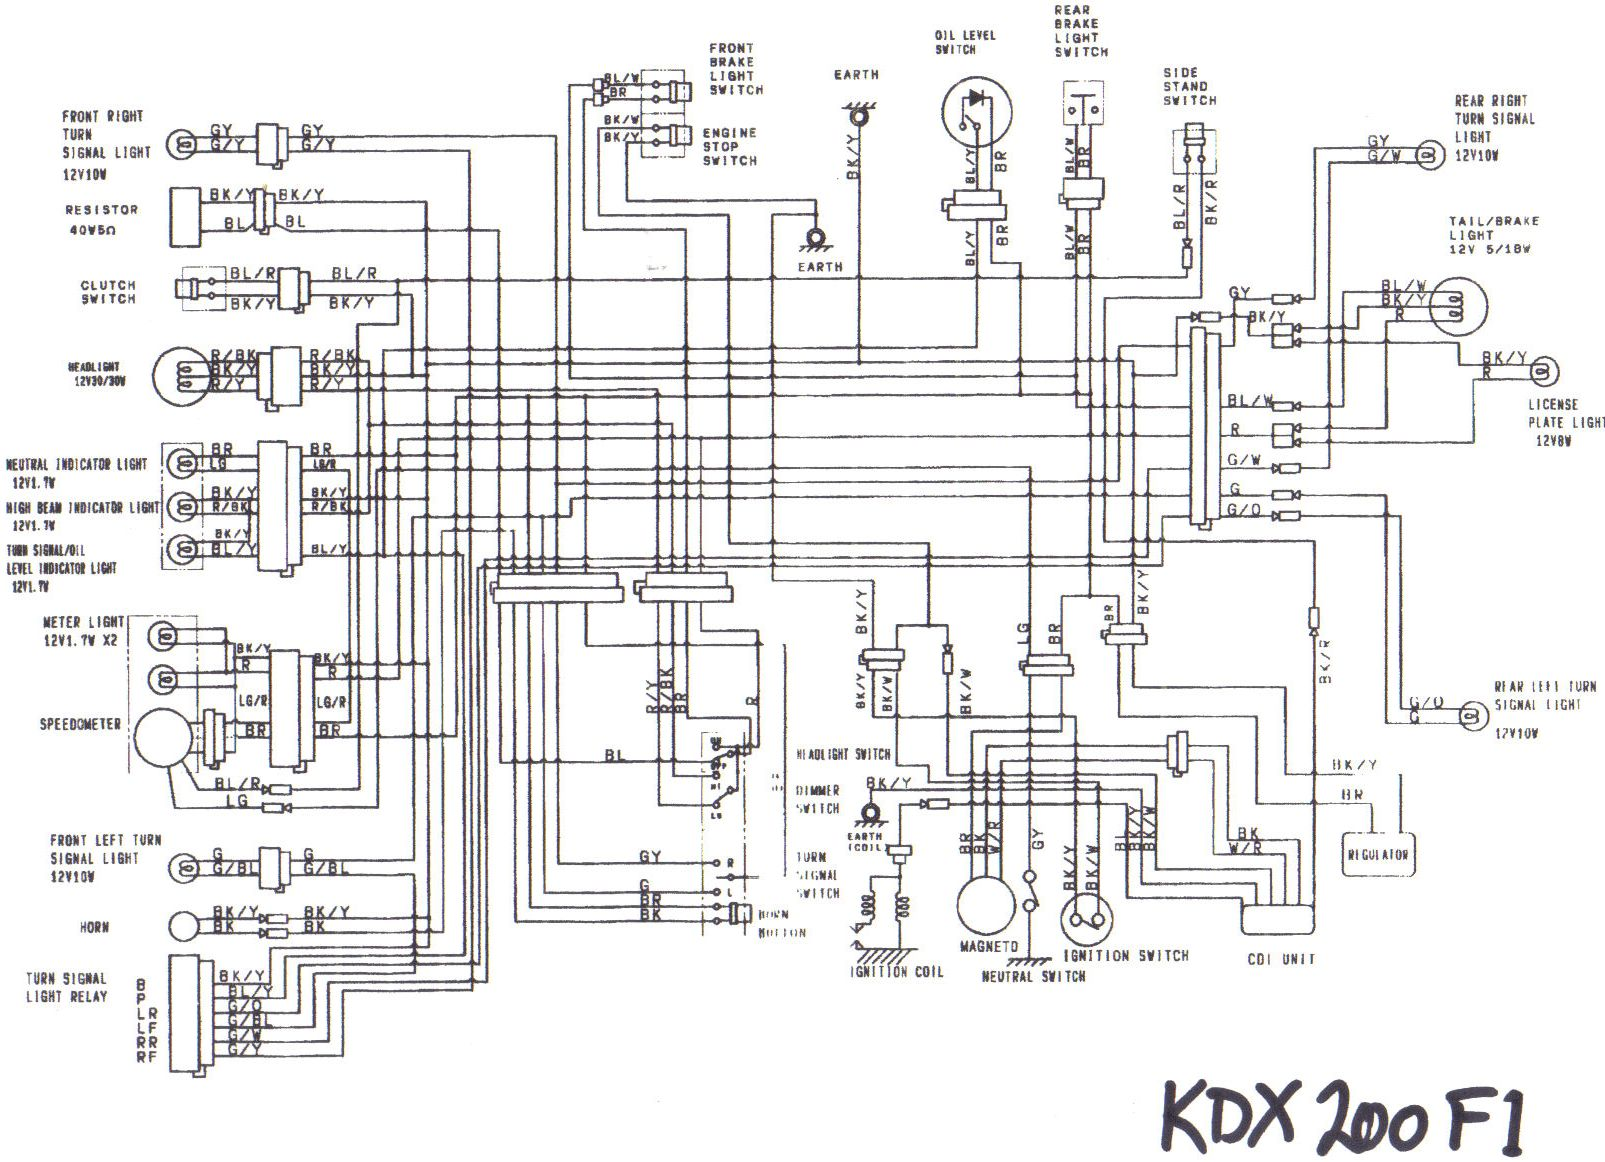 Require Wiring Diagram 91 Kdx 200 - Dbw